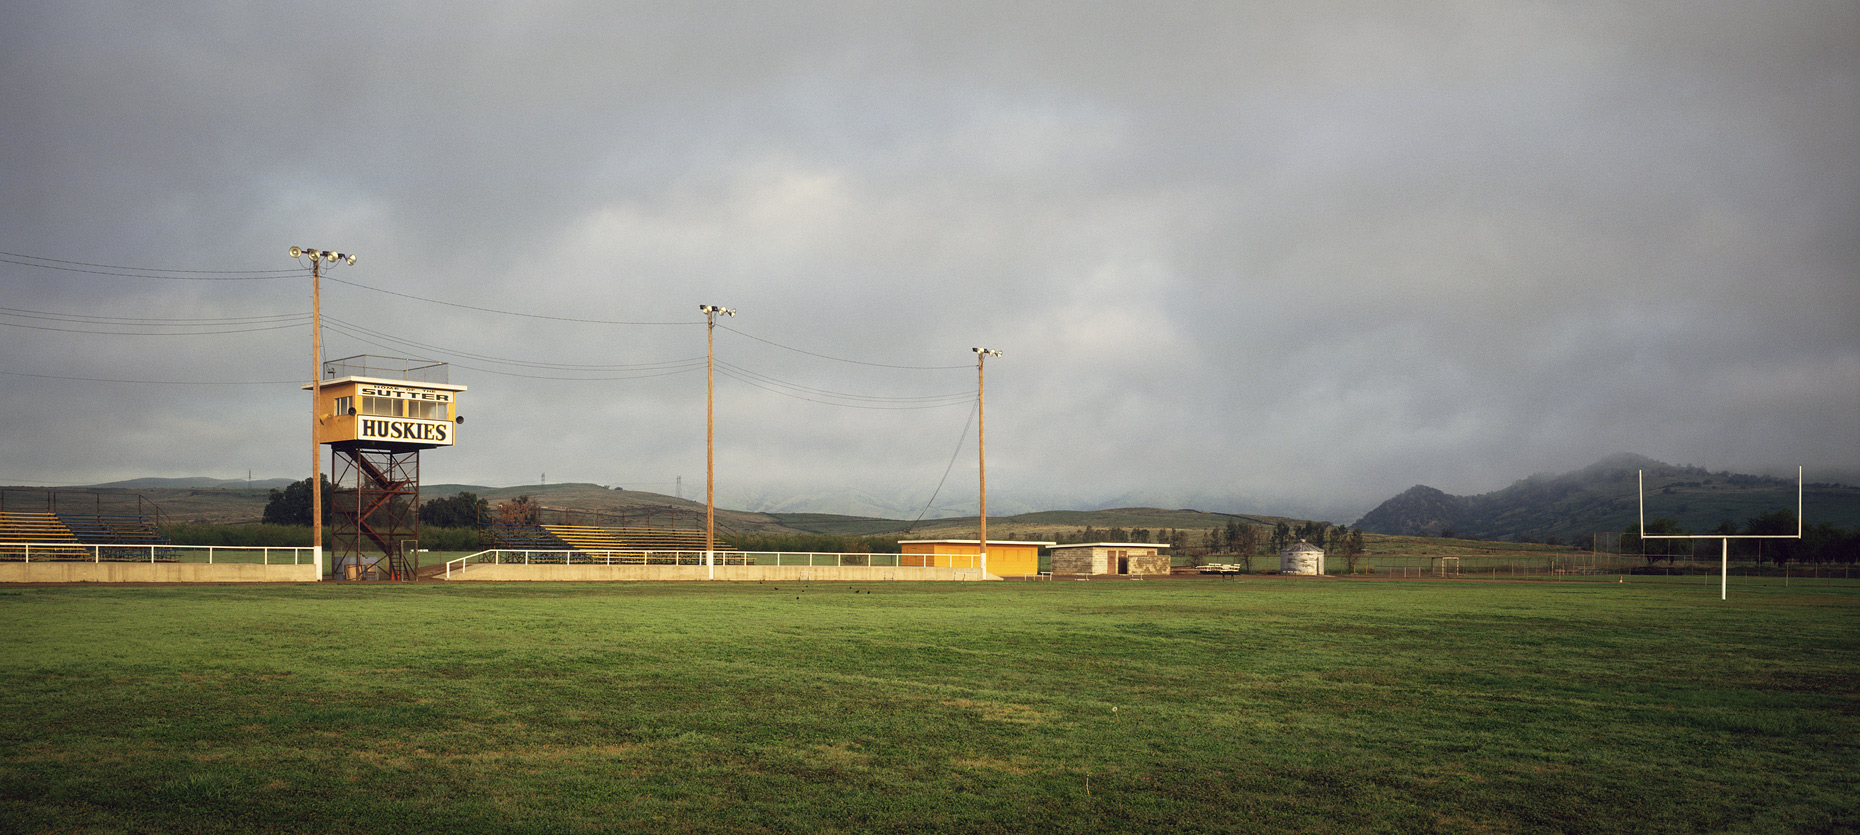 Empty Football Field in Sutter, California